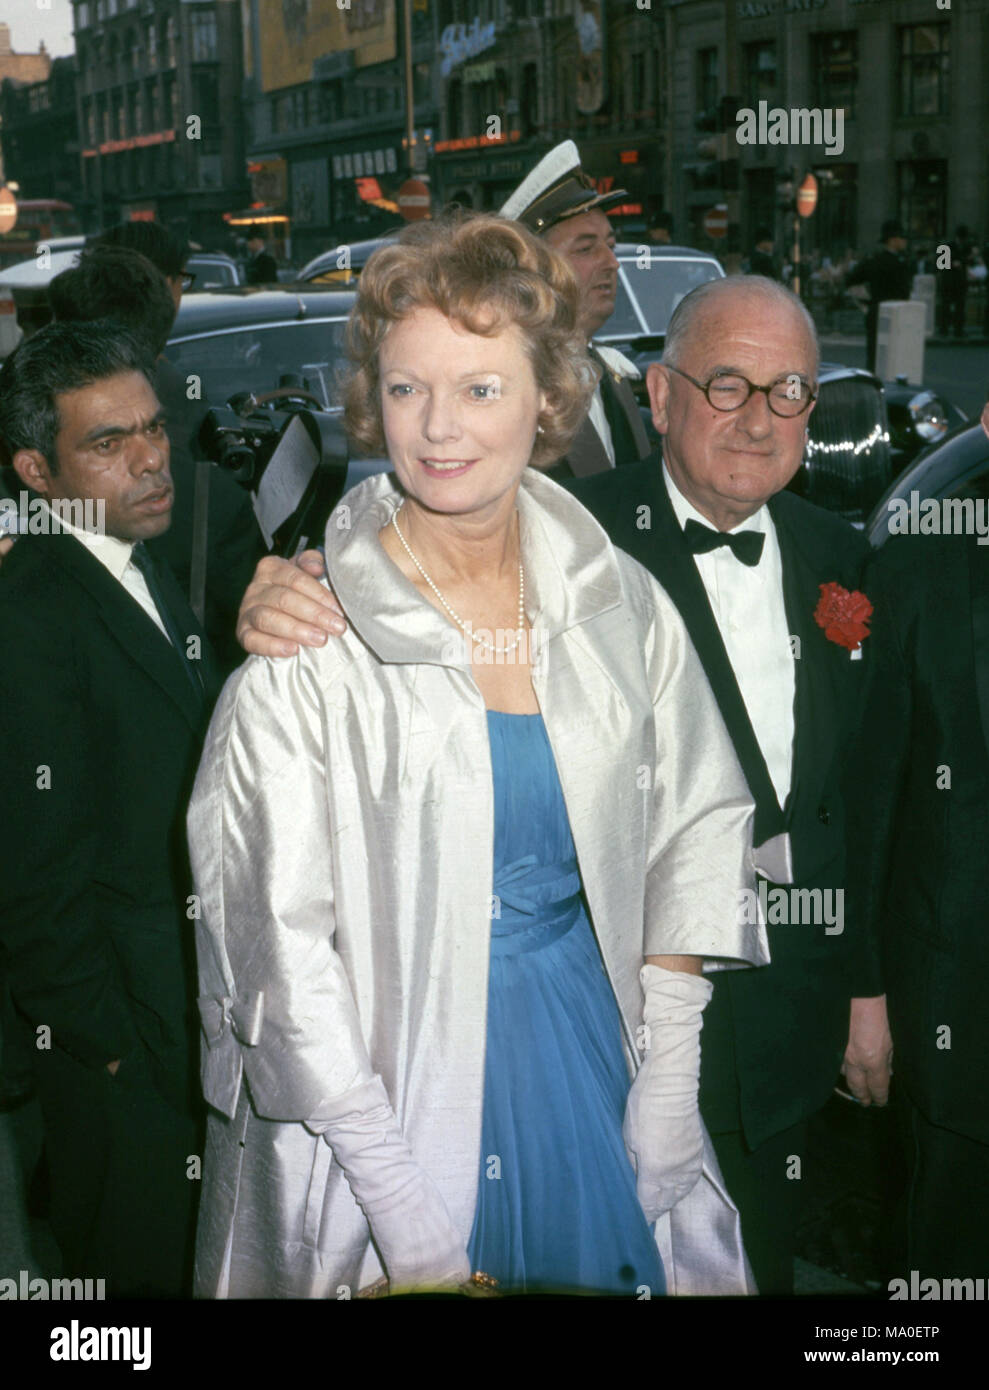 ANNA NEAGLE (1904-1986) English film actress with husband Herbert Wilcox at a London premiere about 1965 - Stock Image